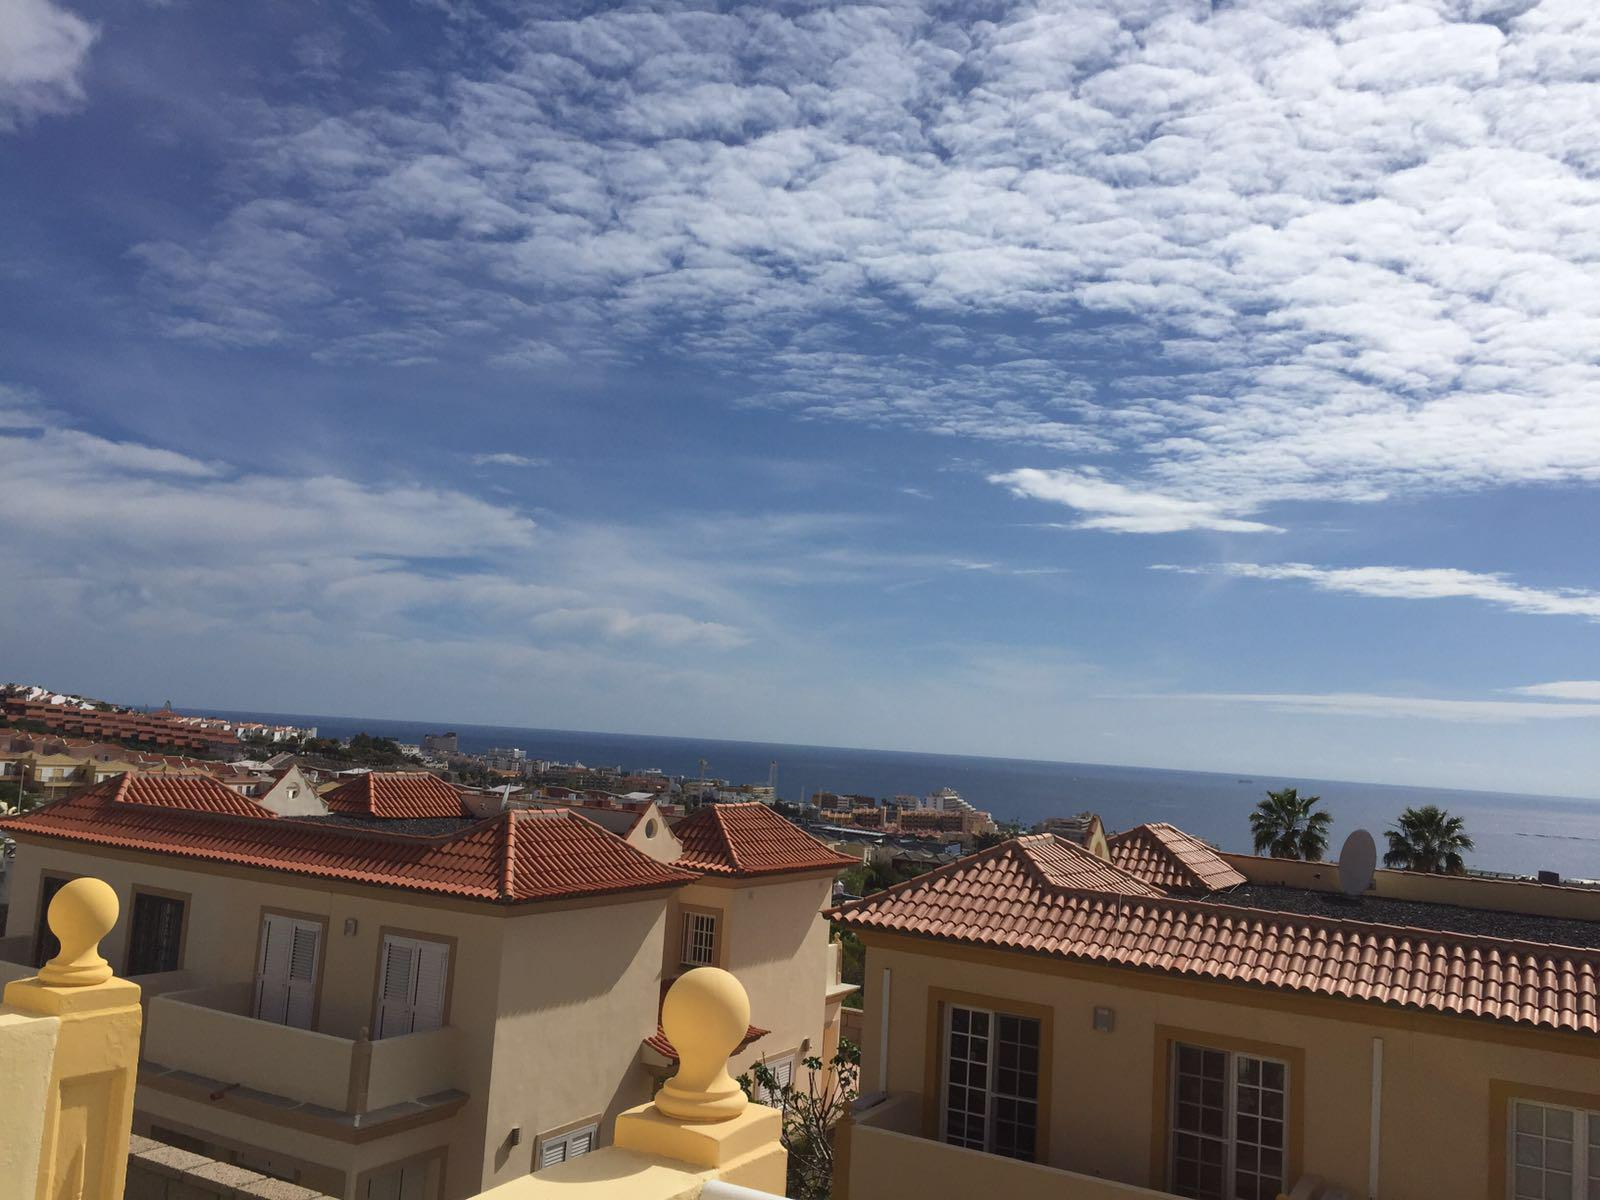 Properties for Sale in Tenerife, Canary Islands, Spain | SylkWayStar Real Estate. Townhouse 5 bedrooms Madroñal. Image-25118